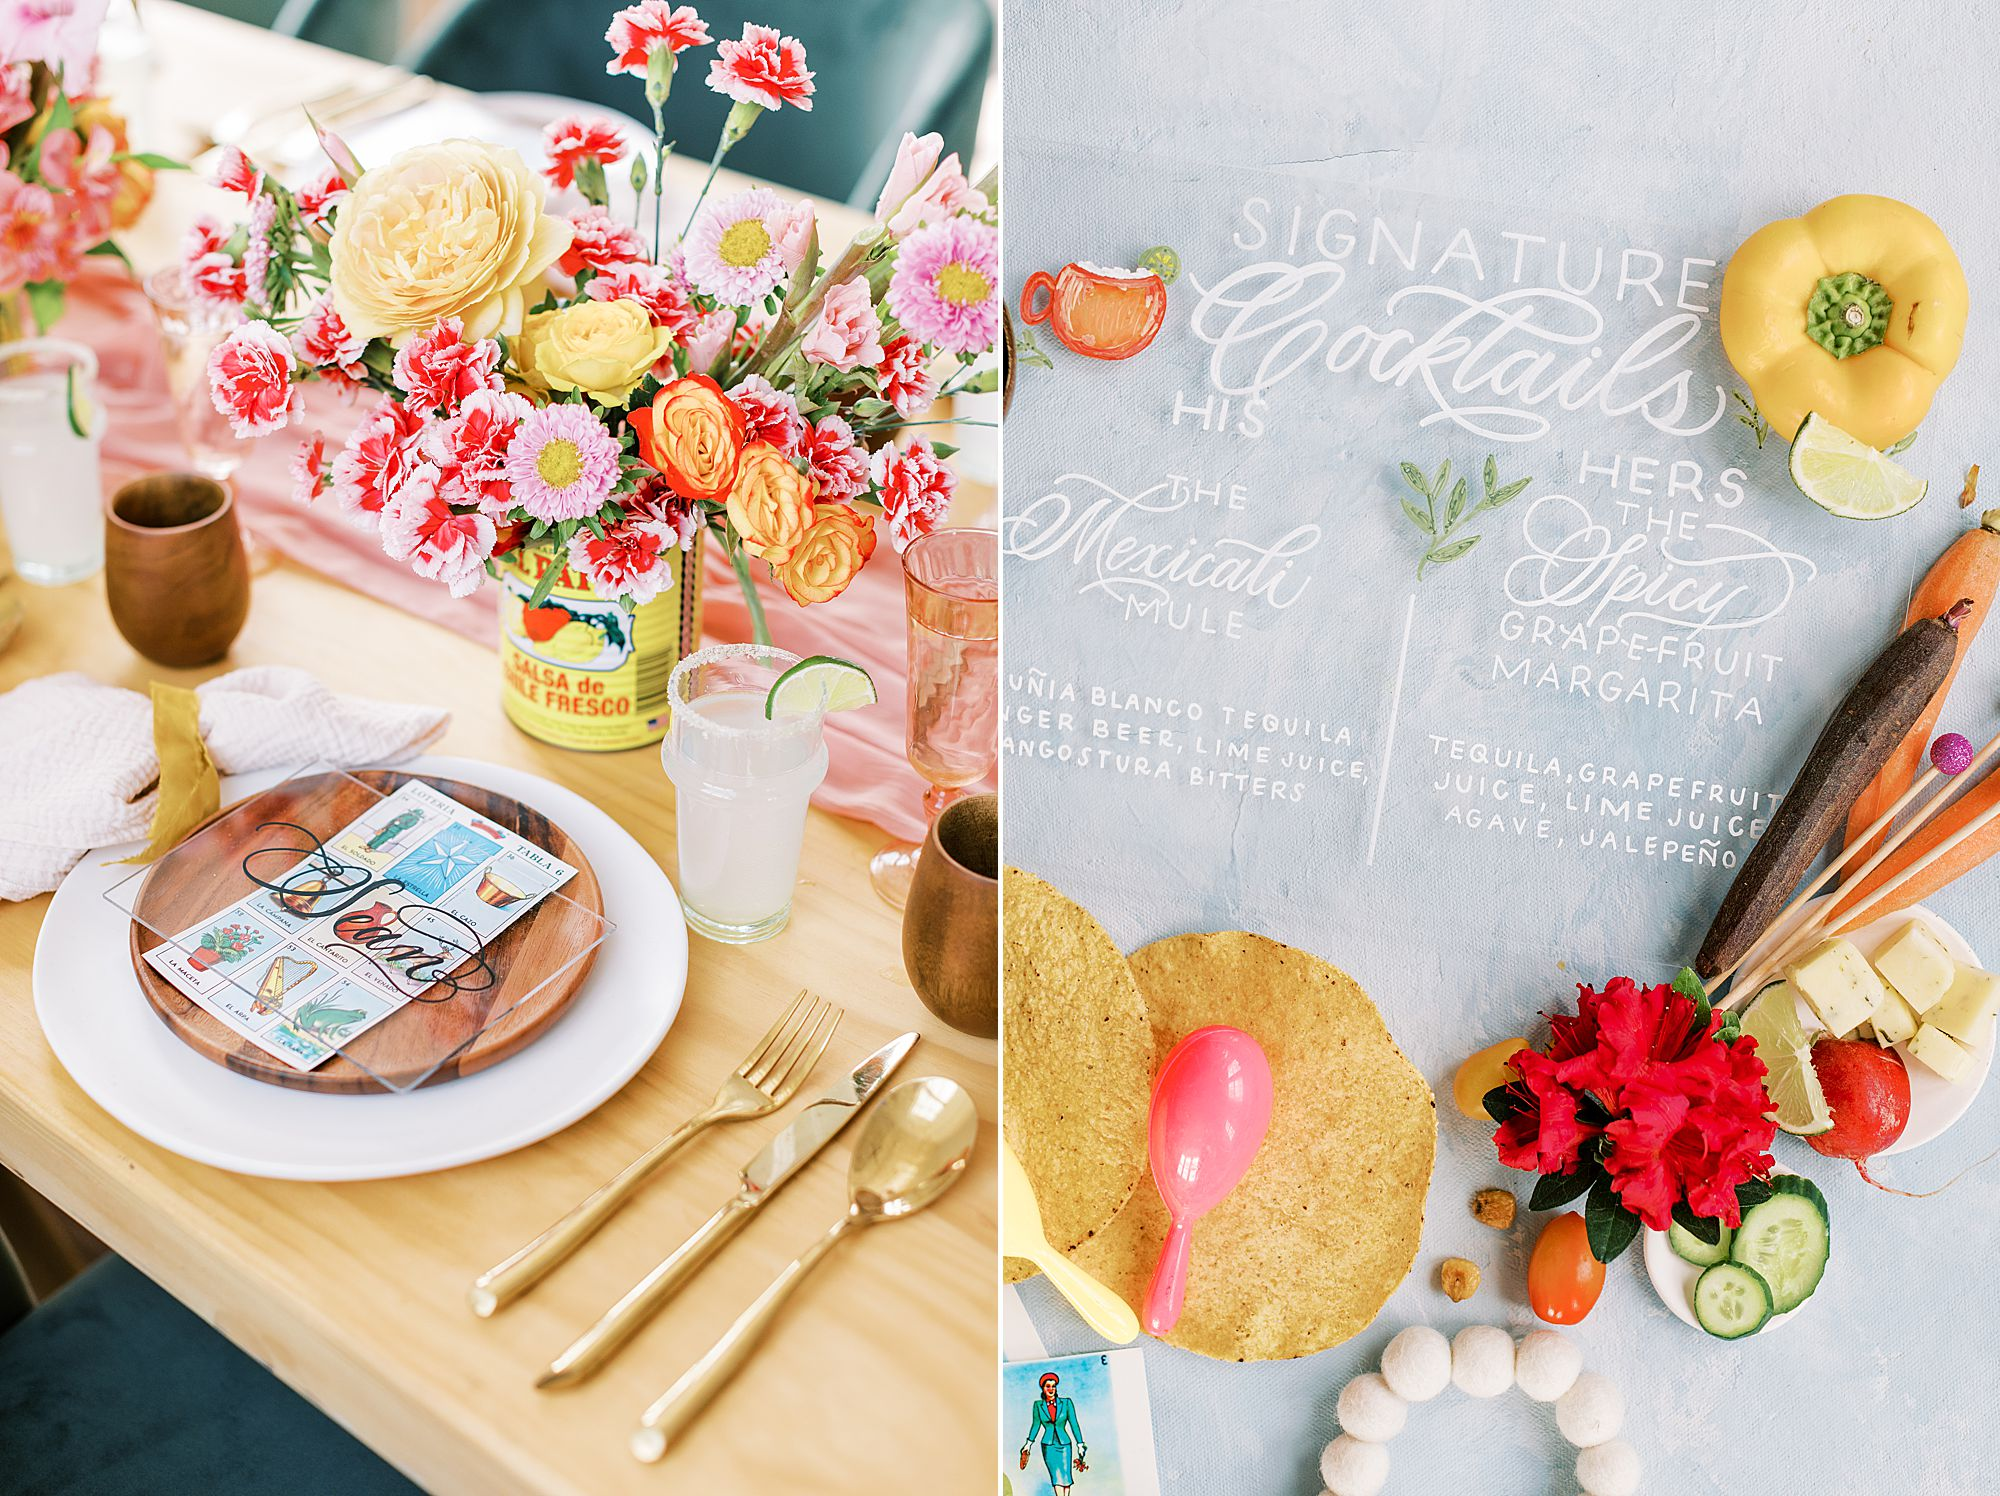 Cinco De Mayo Inspiration for Your FIesta - Party Crush Studio and Ashley Baumgartner_0059.jpg